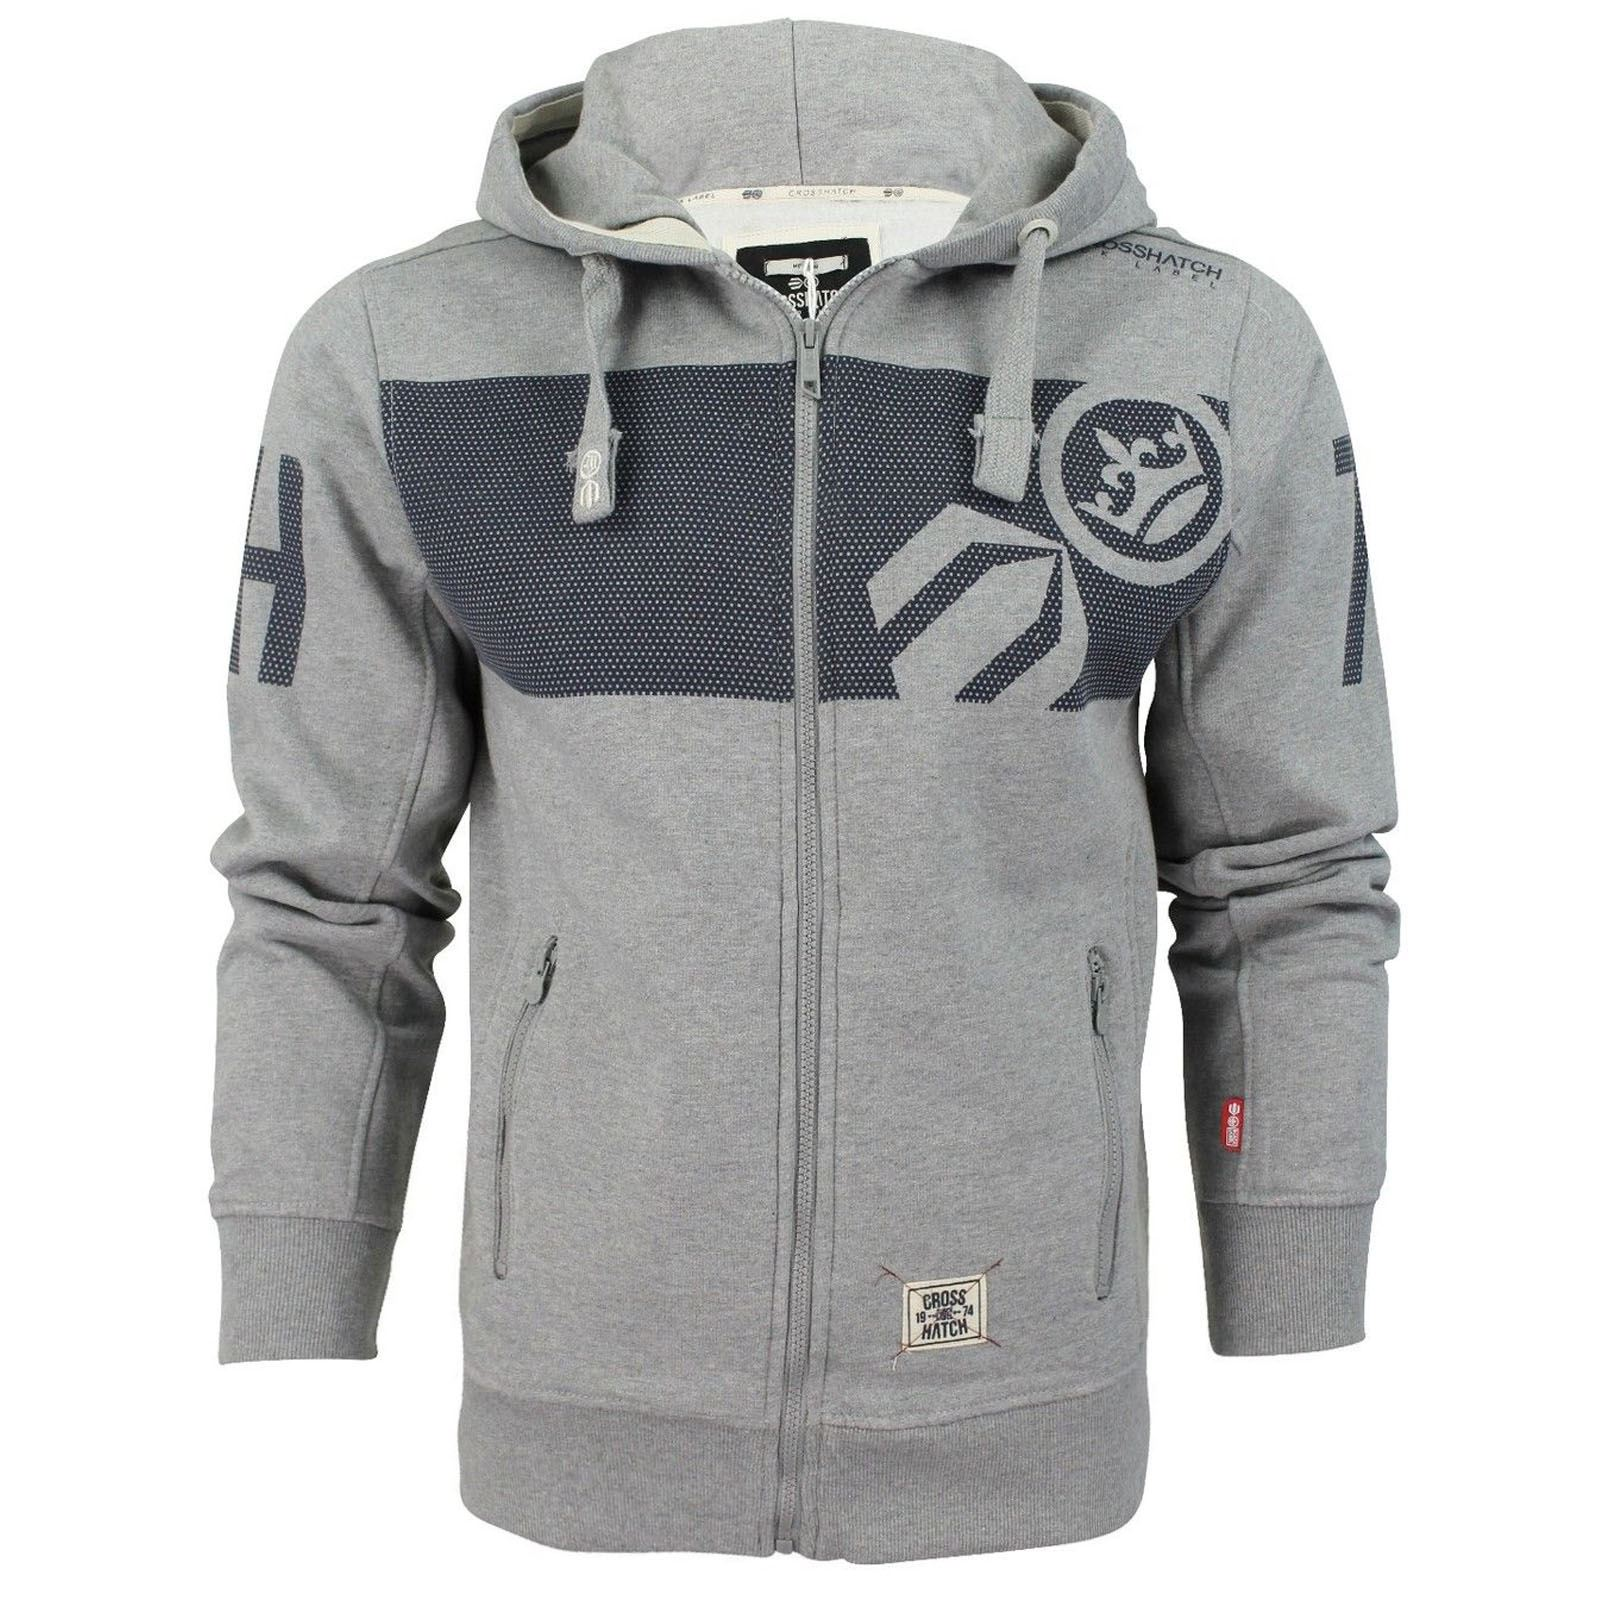 MENS BRANDED CROSSHATCH DESIGNER PULLOVER HOODED JACKET TOP ...